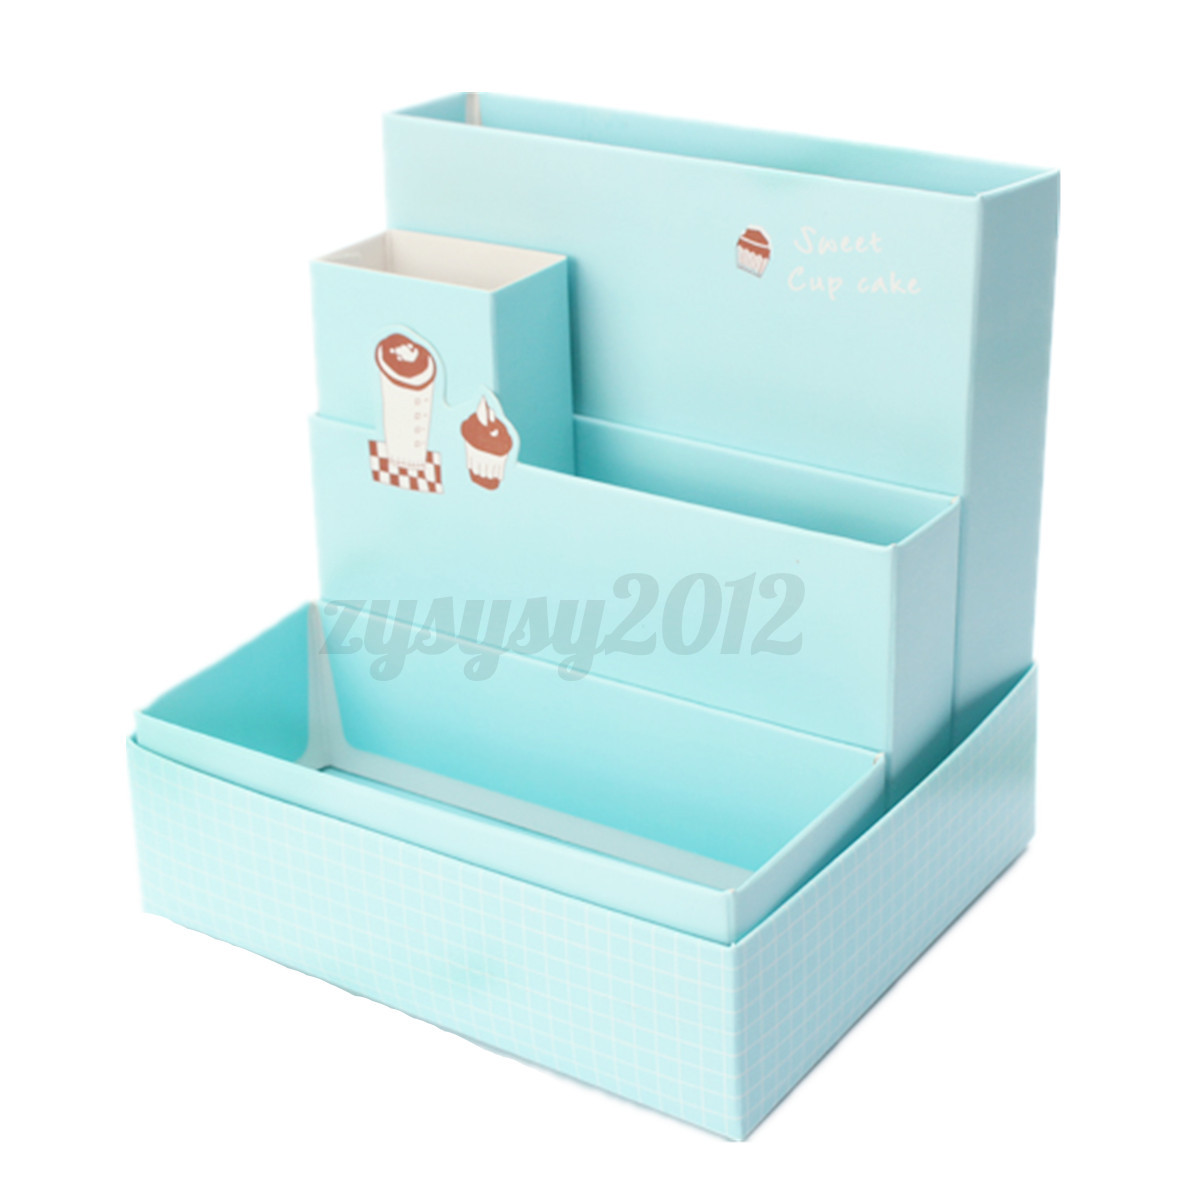 Cute Paper Storage Organizer Stationery Box Makeup Cosmetic Box Desk Decor Ebay